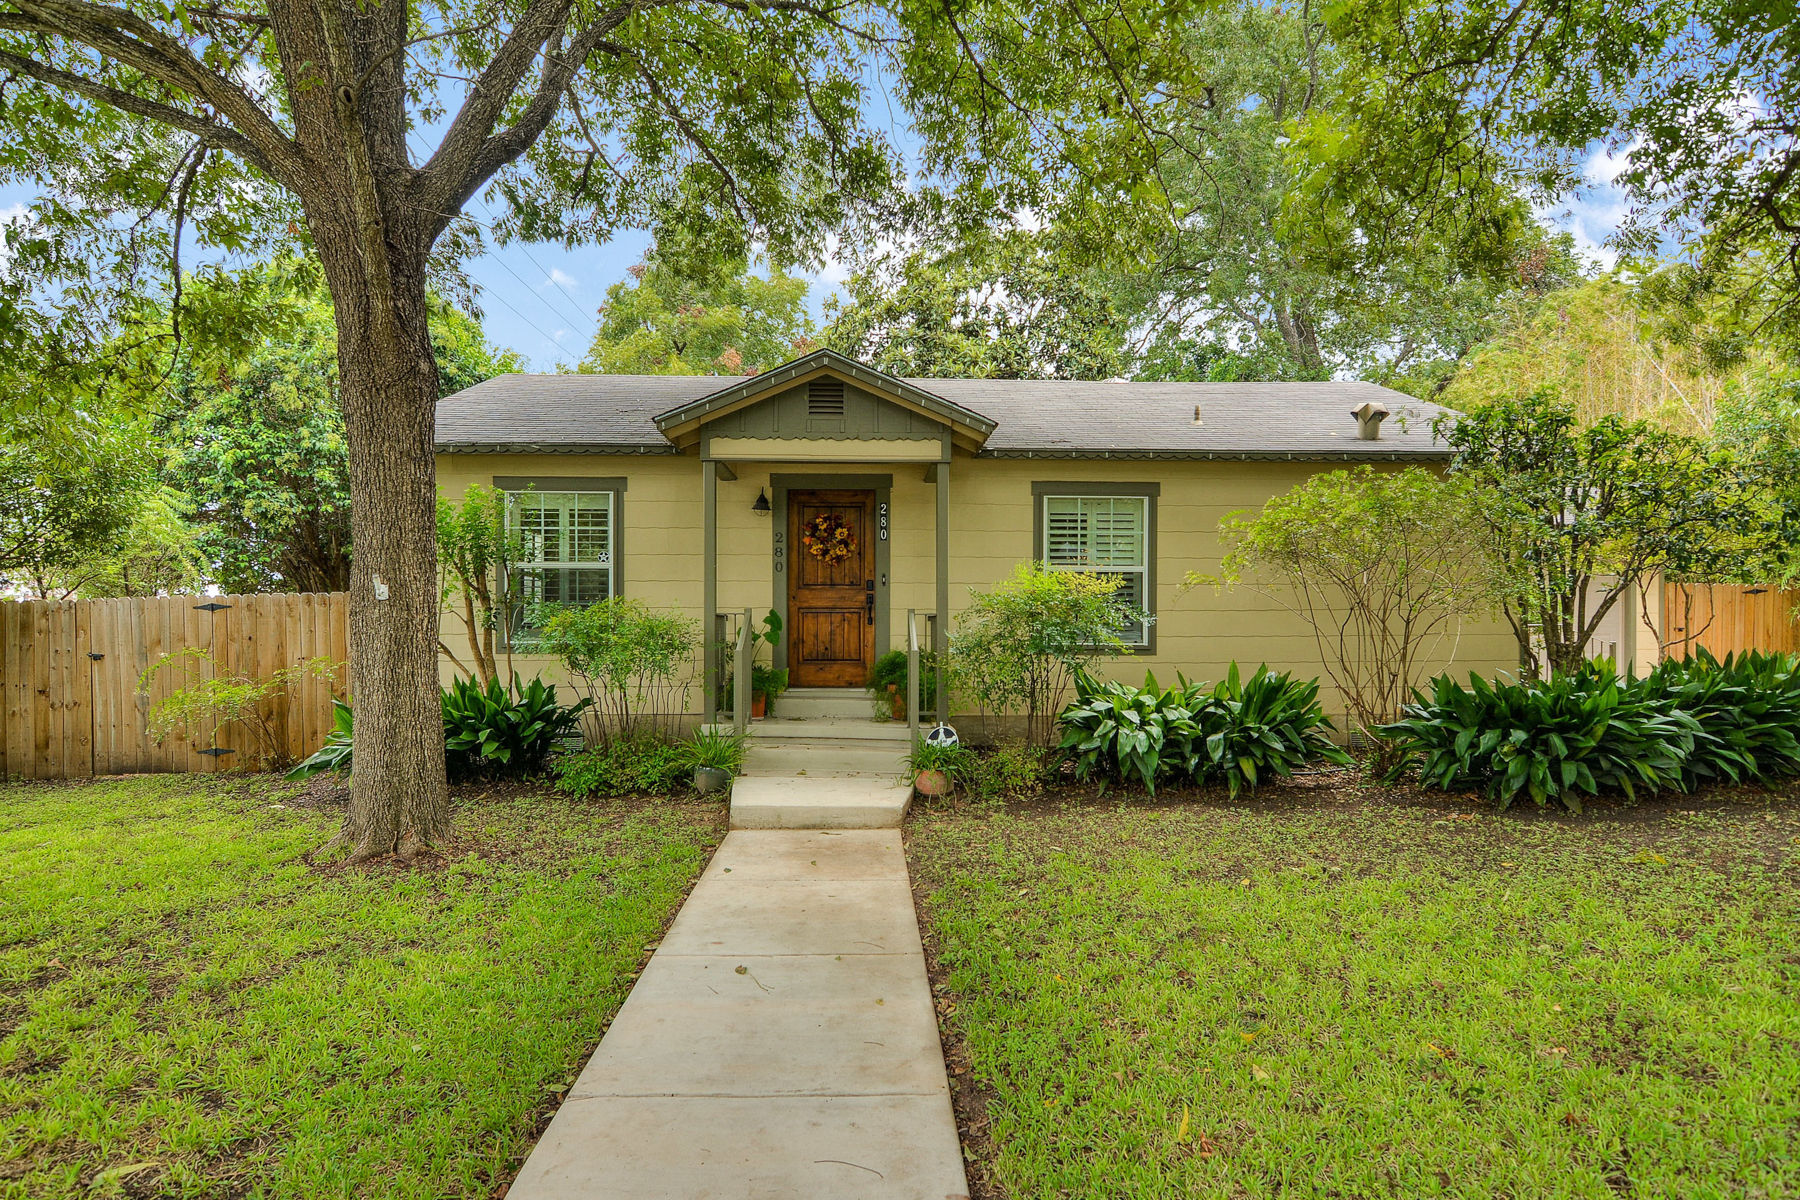 Single Family Home for Sale at Charming Home in Alamo Heights 280 E Fair Oaks Pl San Antonio, Texas 78209 United States